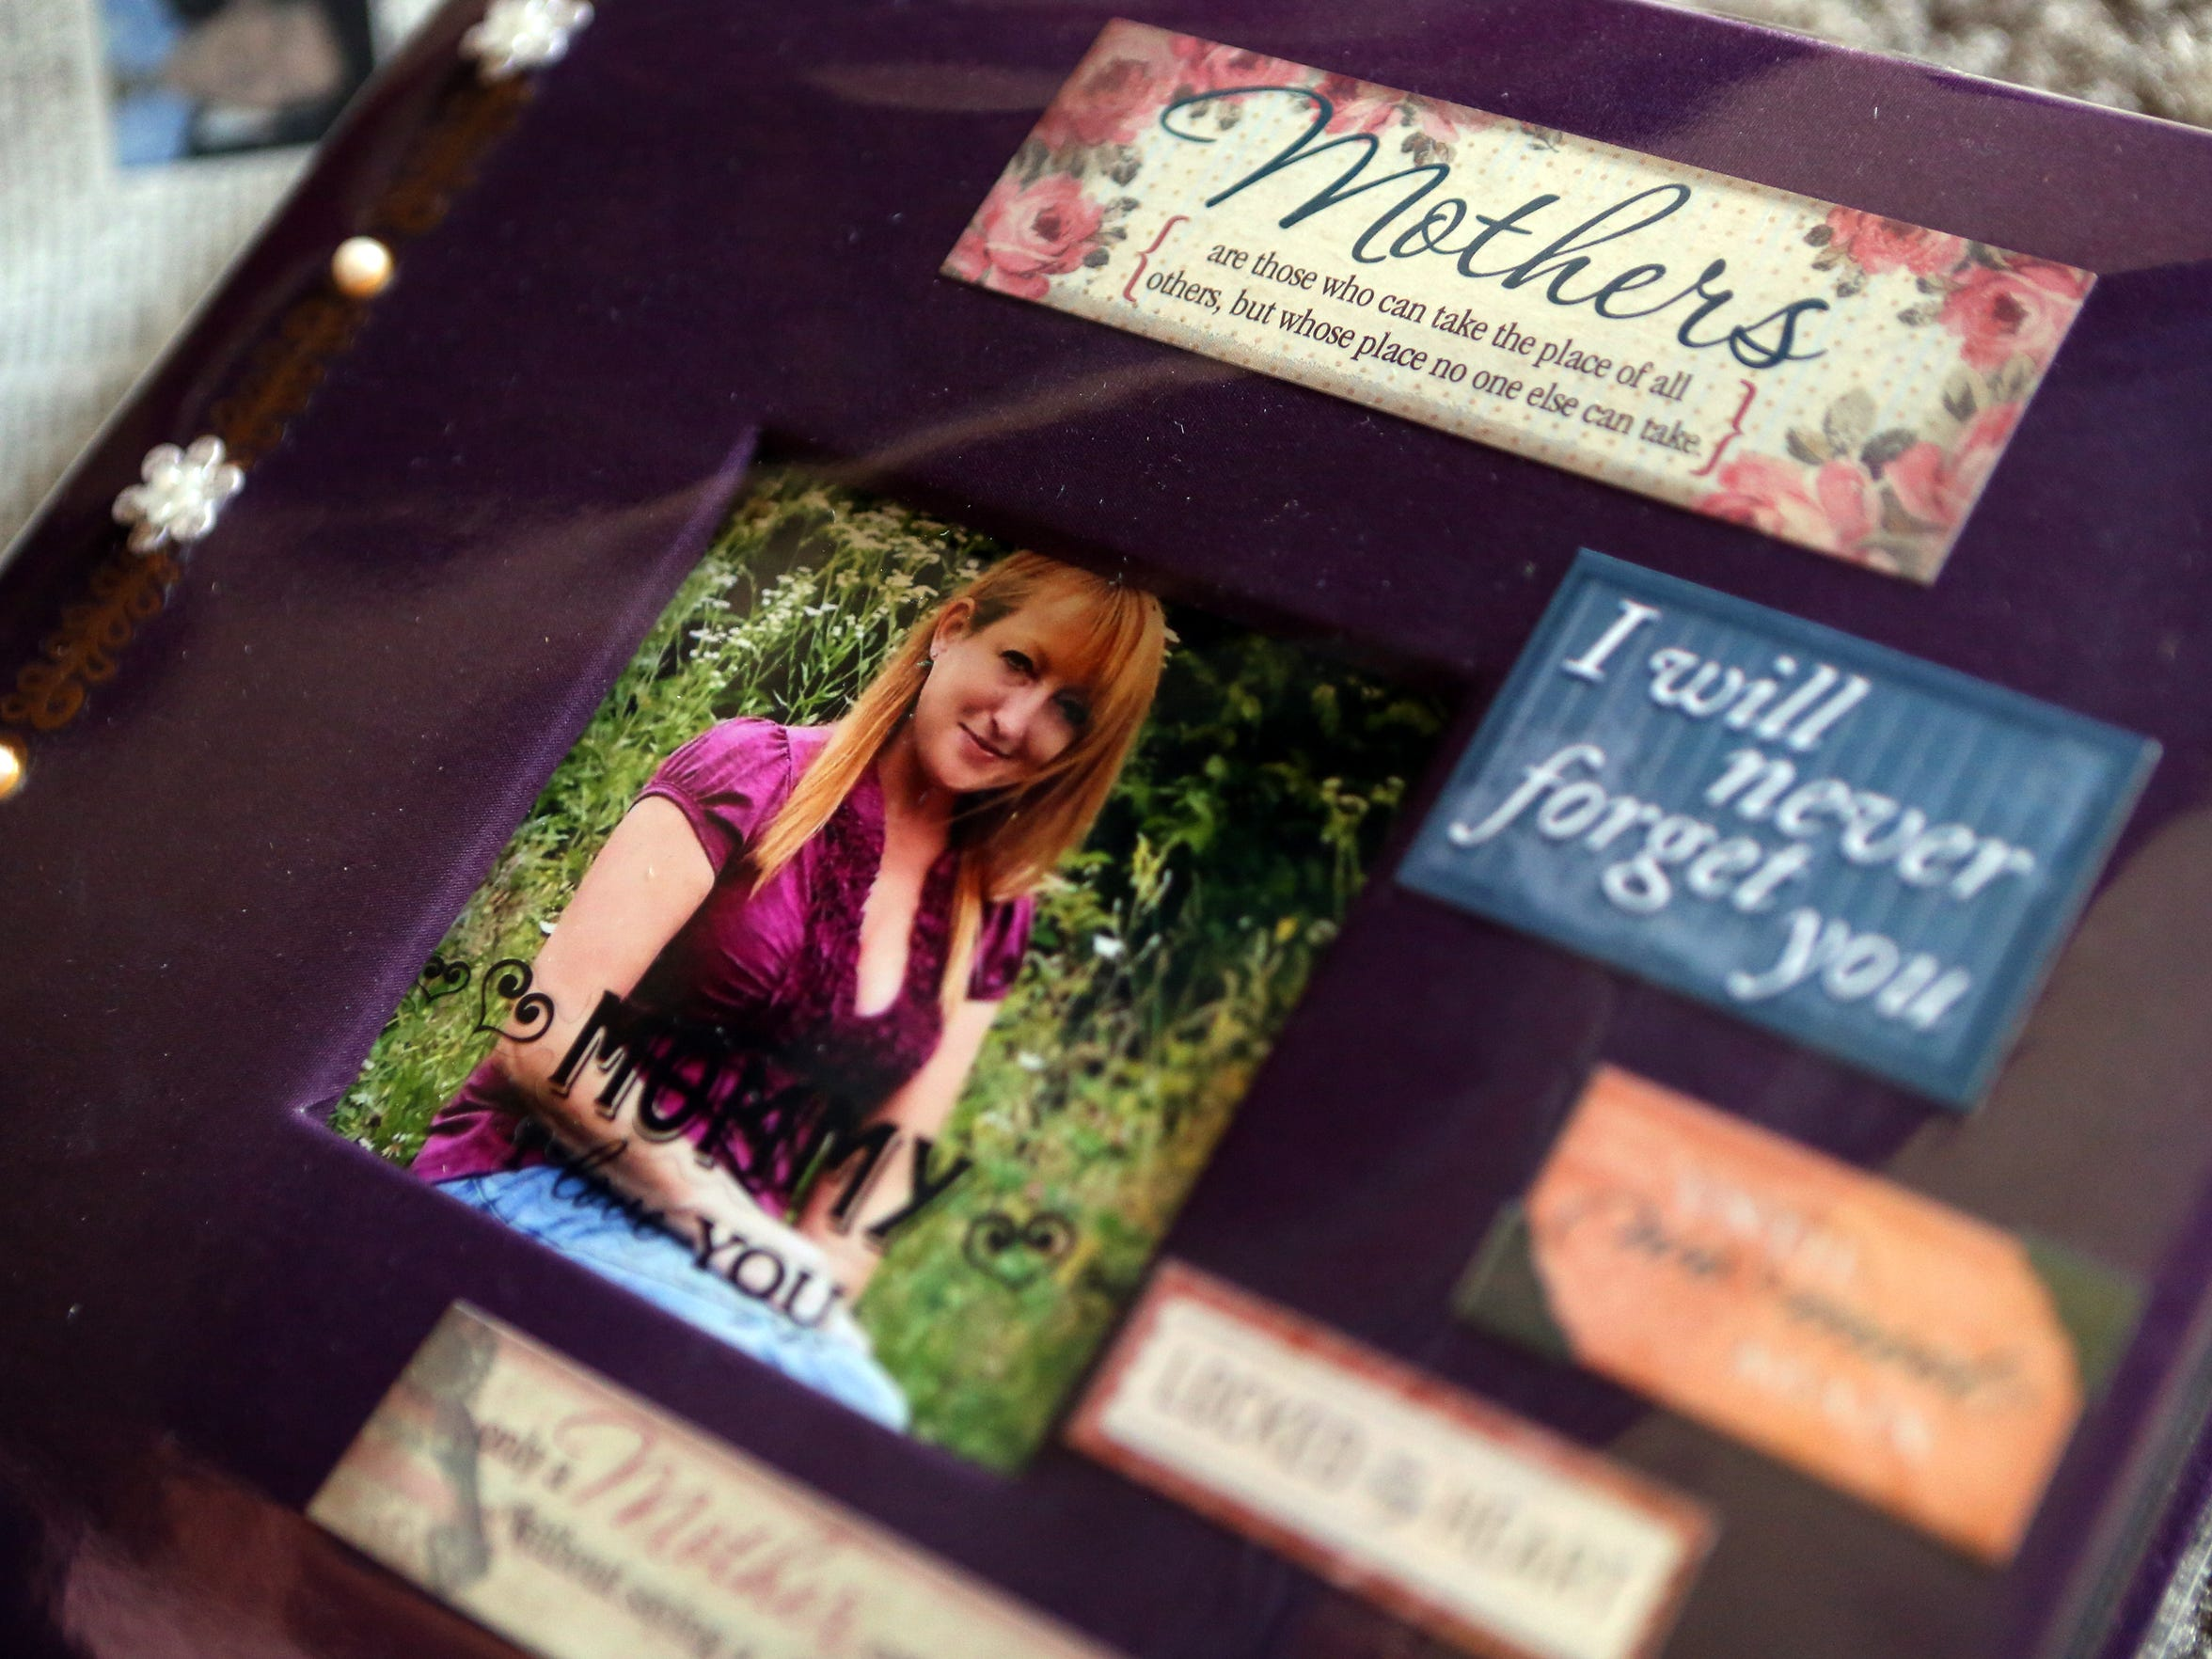 Ashley McMackin made a scrapbook to memorialize her